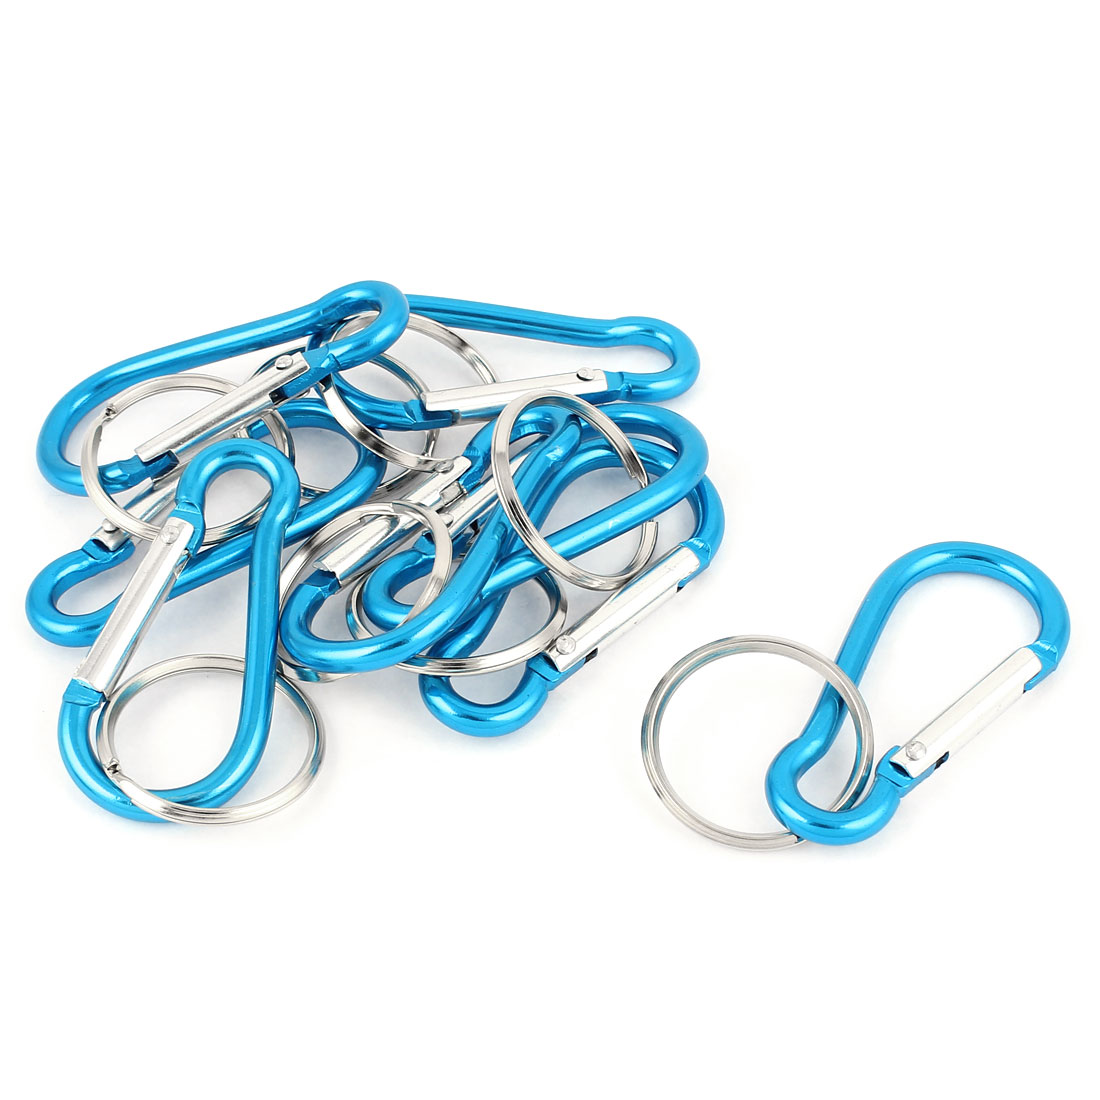 Camping Cycling Metal Calabash Shaped Spring Loaded Gate Clip Carabiner Hook Key Chain Ring 8pcs Sky Blue